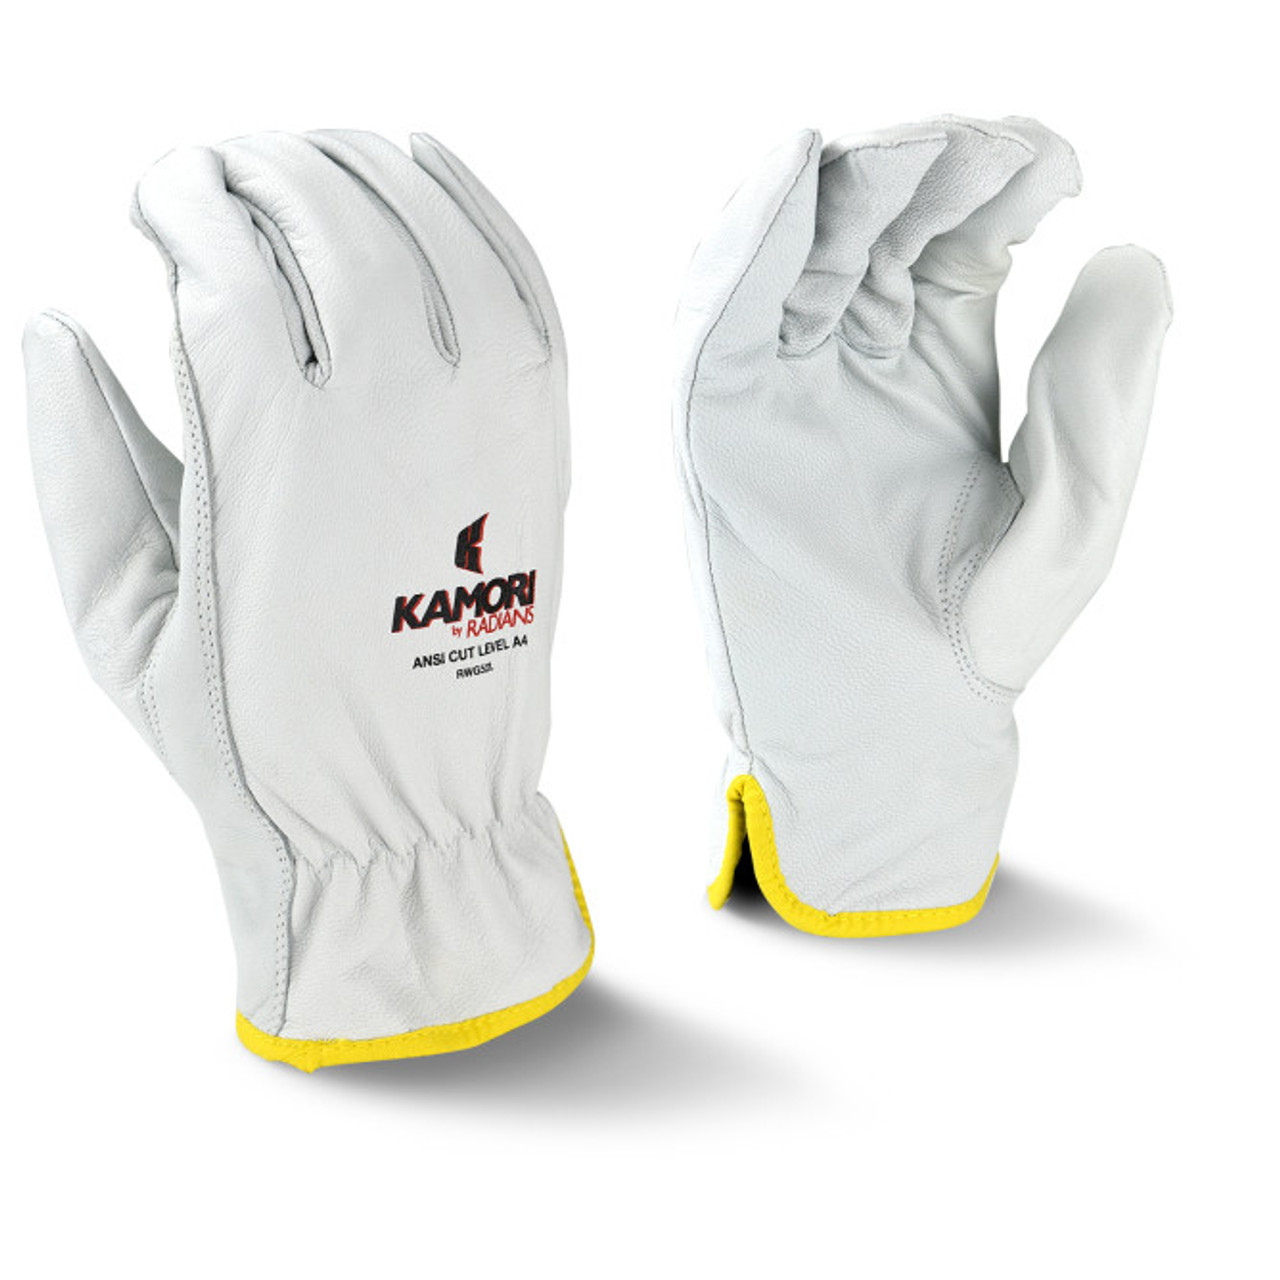 ANSI A4 - Radians RWG52 Kamori™ Cut Protection Level A4 Work Gloves